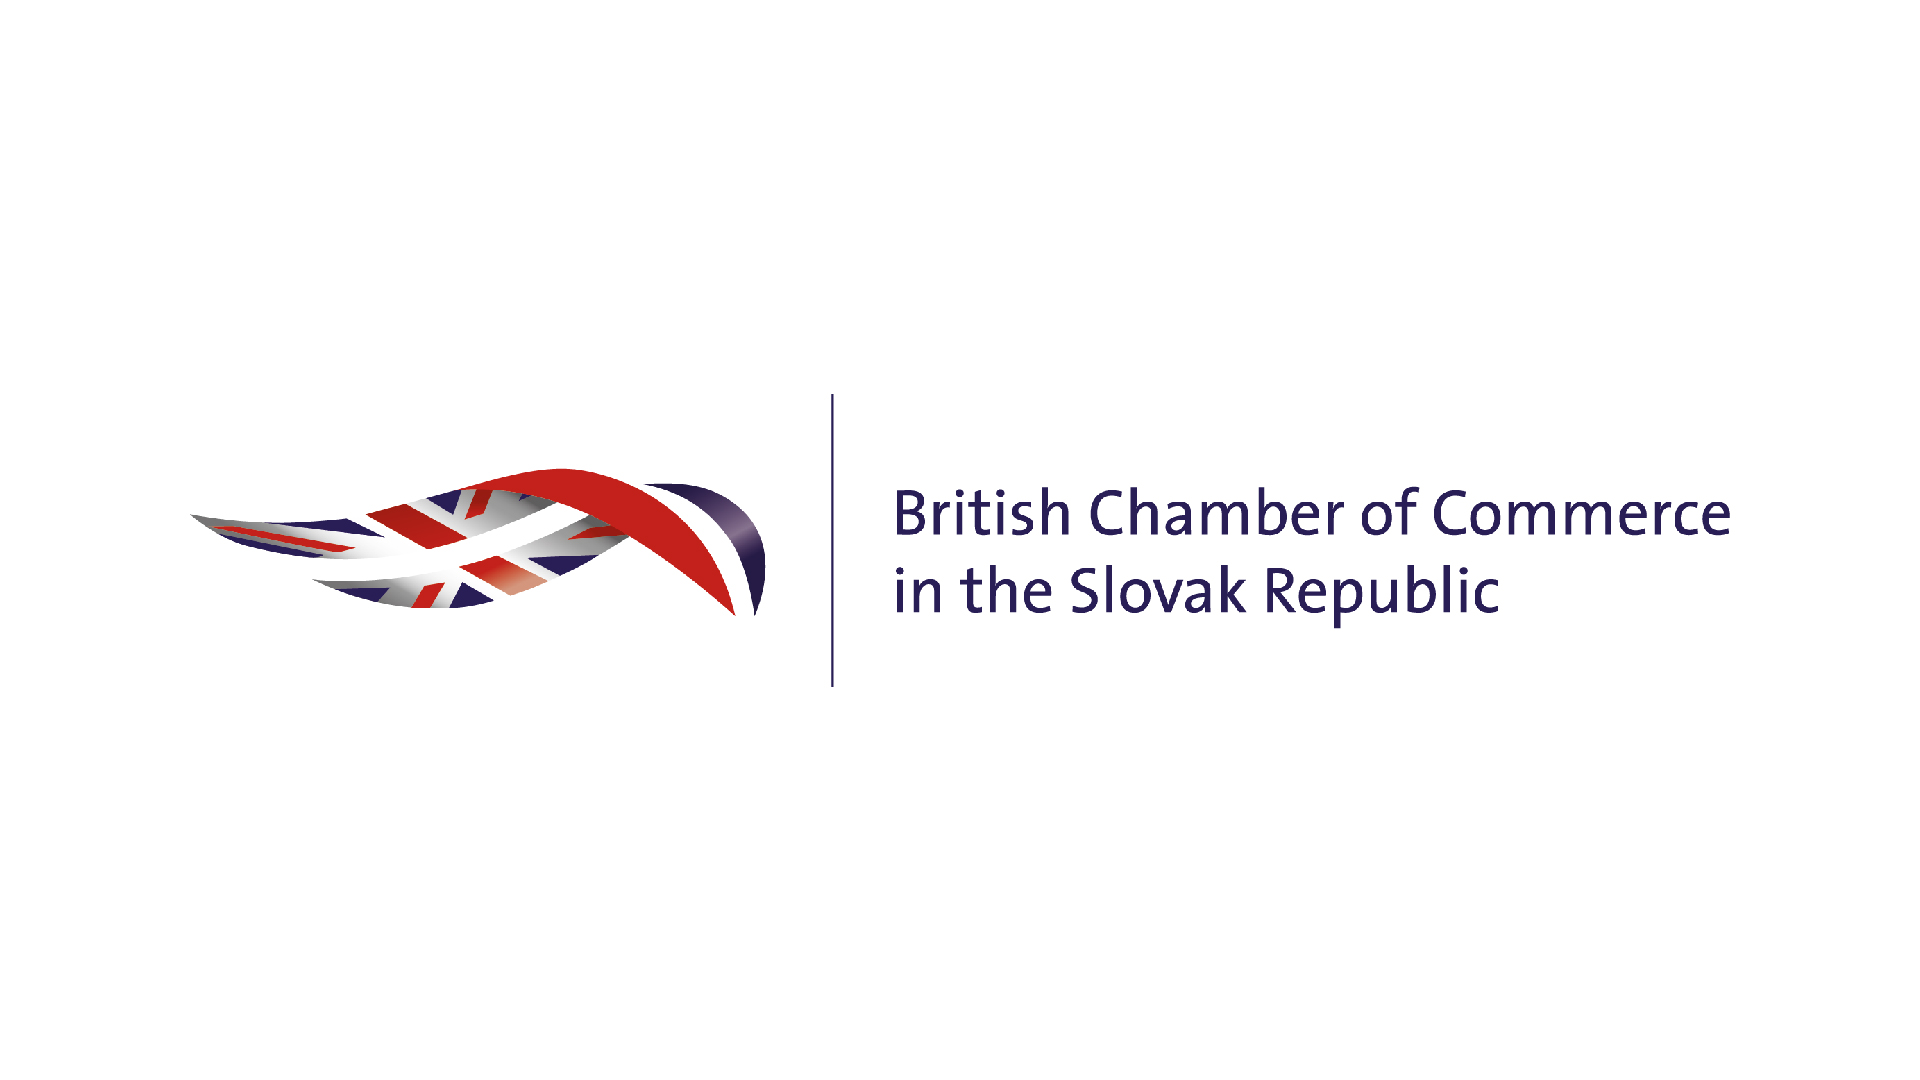 The British Chamber of Commerce in the Slovak Republic Reconnects with Their Members Through Glue Up